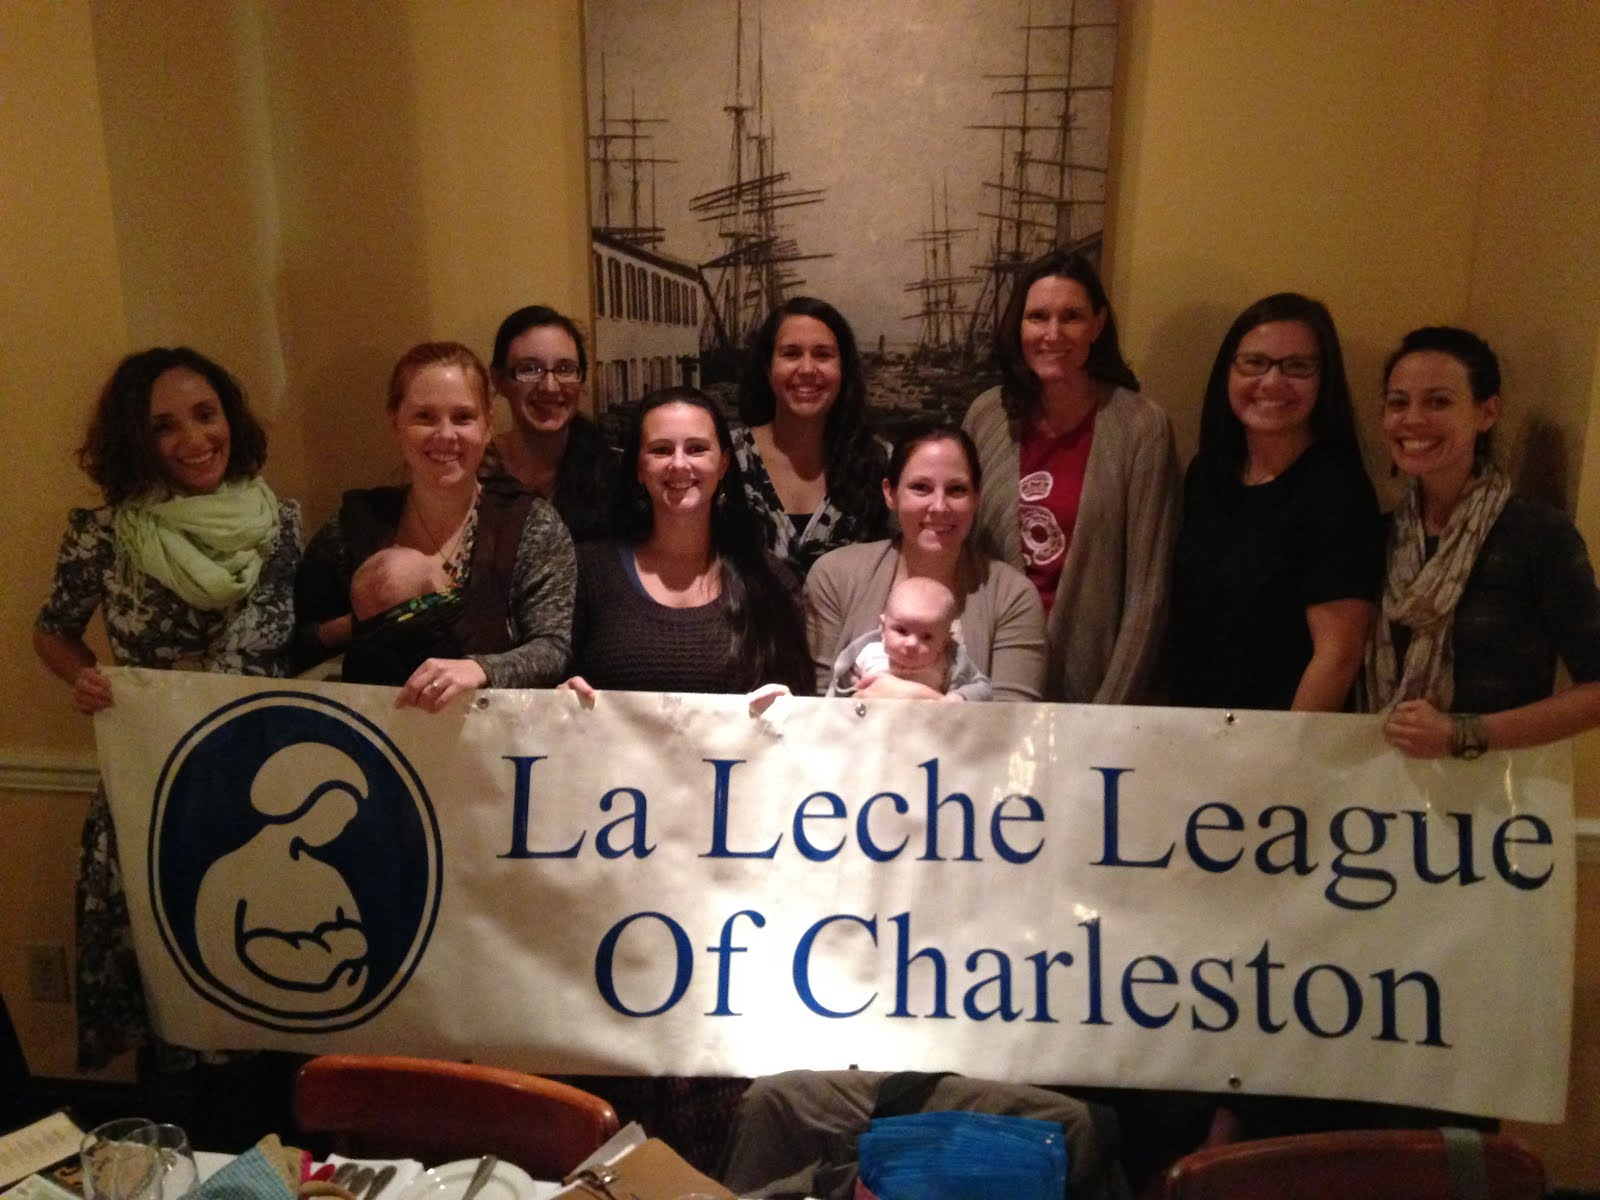 La Leche League Leaders